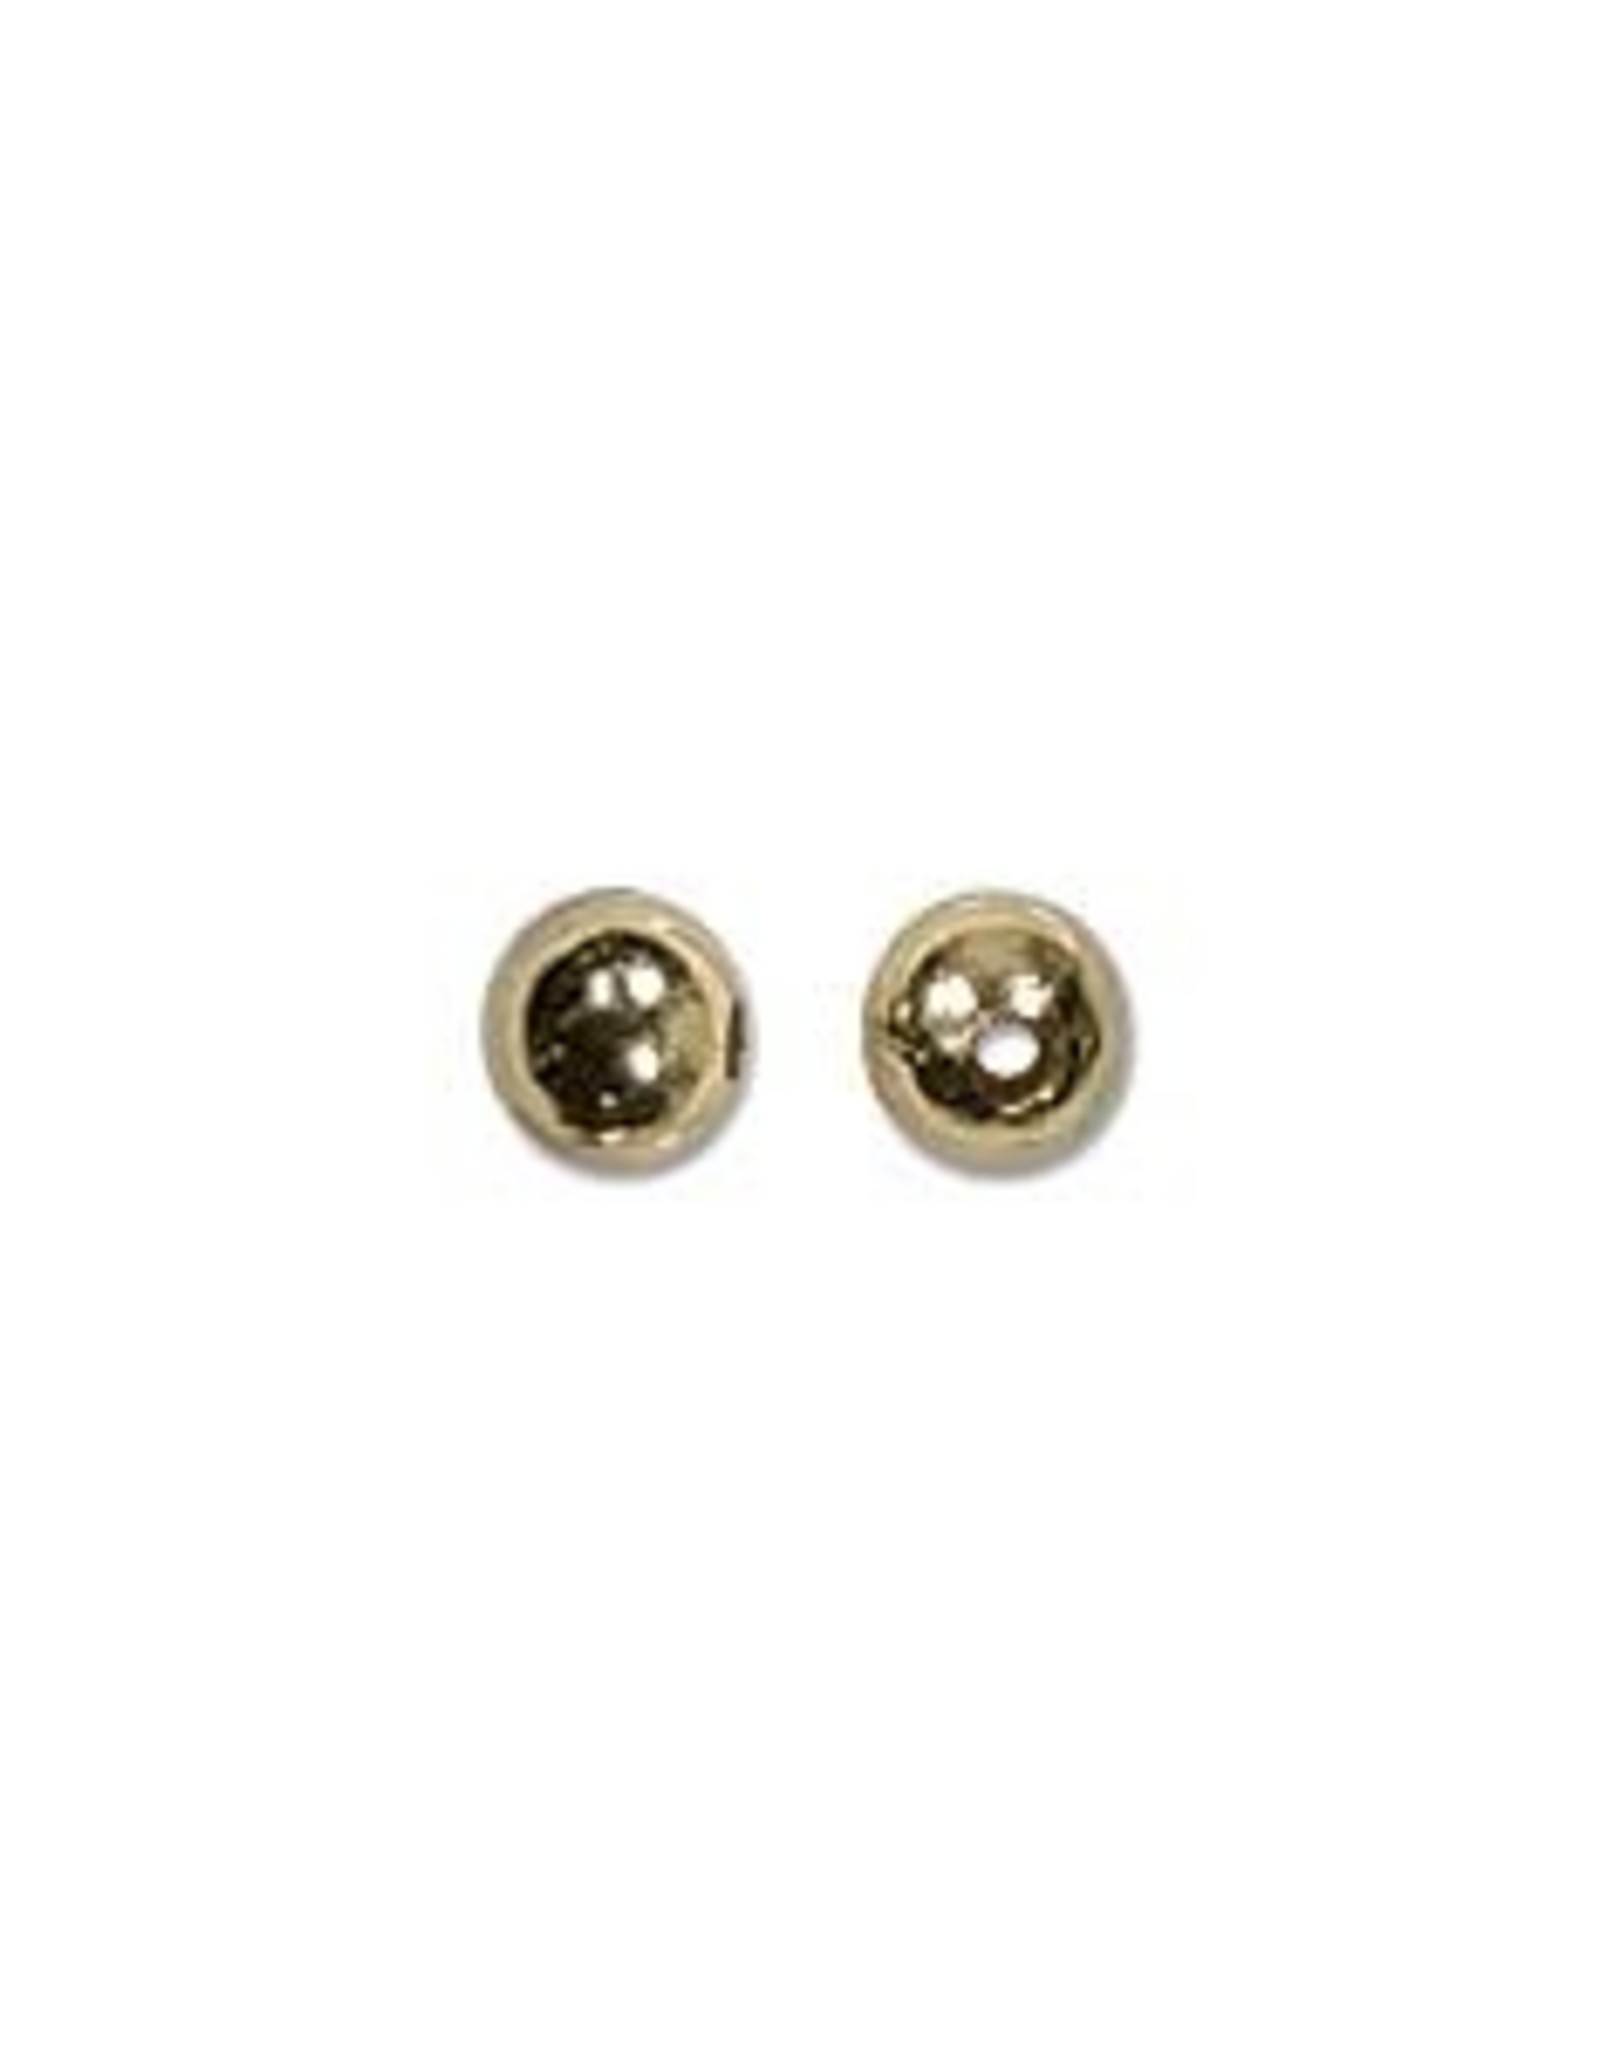 3mm Rounds Gold Plate Qty 24